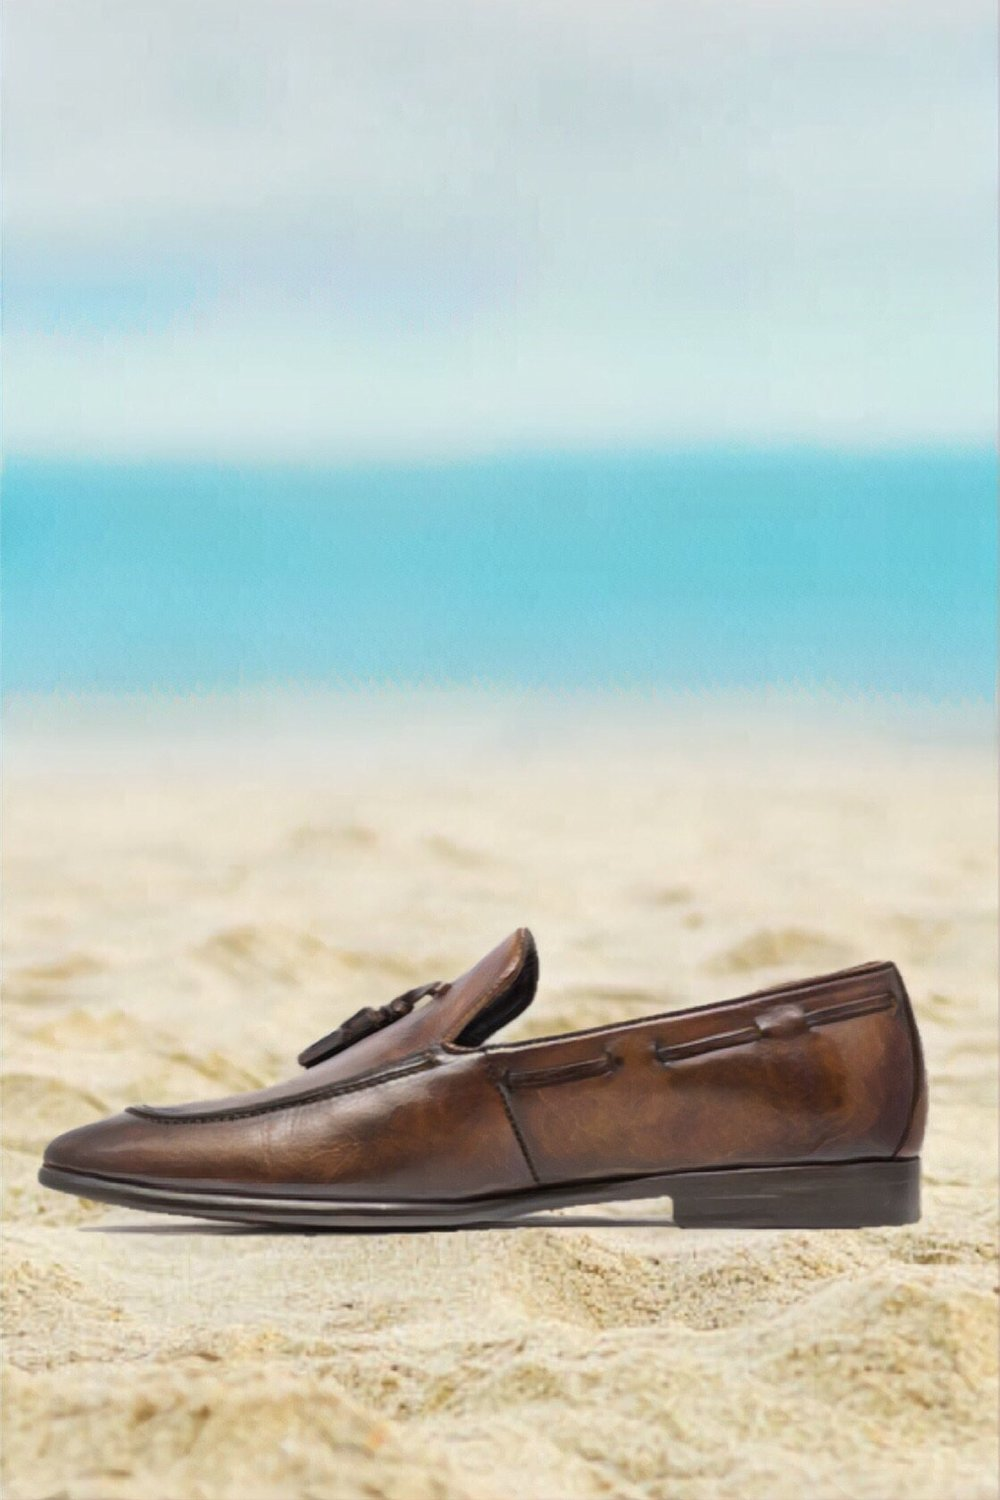 THE 403 RB CALFSKIN LOAFER - A rustic touch is sometimes the best way to relax. This breathable and elegant design in a smoked oak finish will keep you cool while still looking your best. Be sure to keep your no-show socks on to avoid ruining the tropical scent.